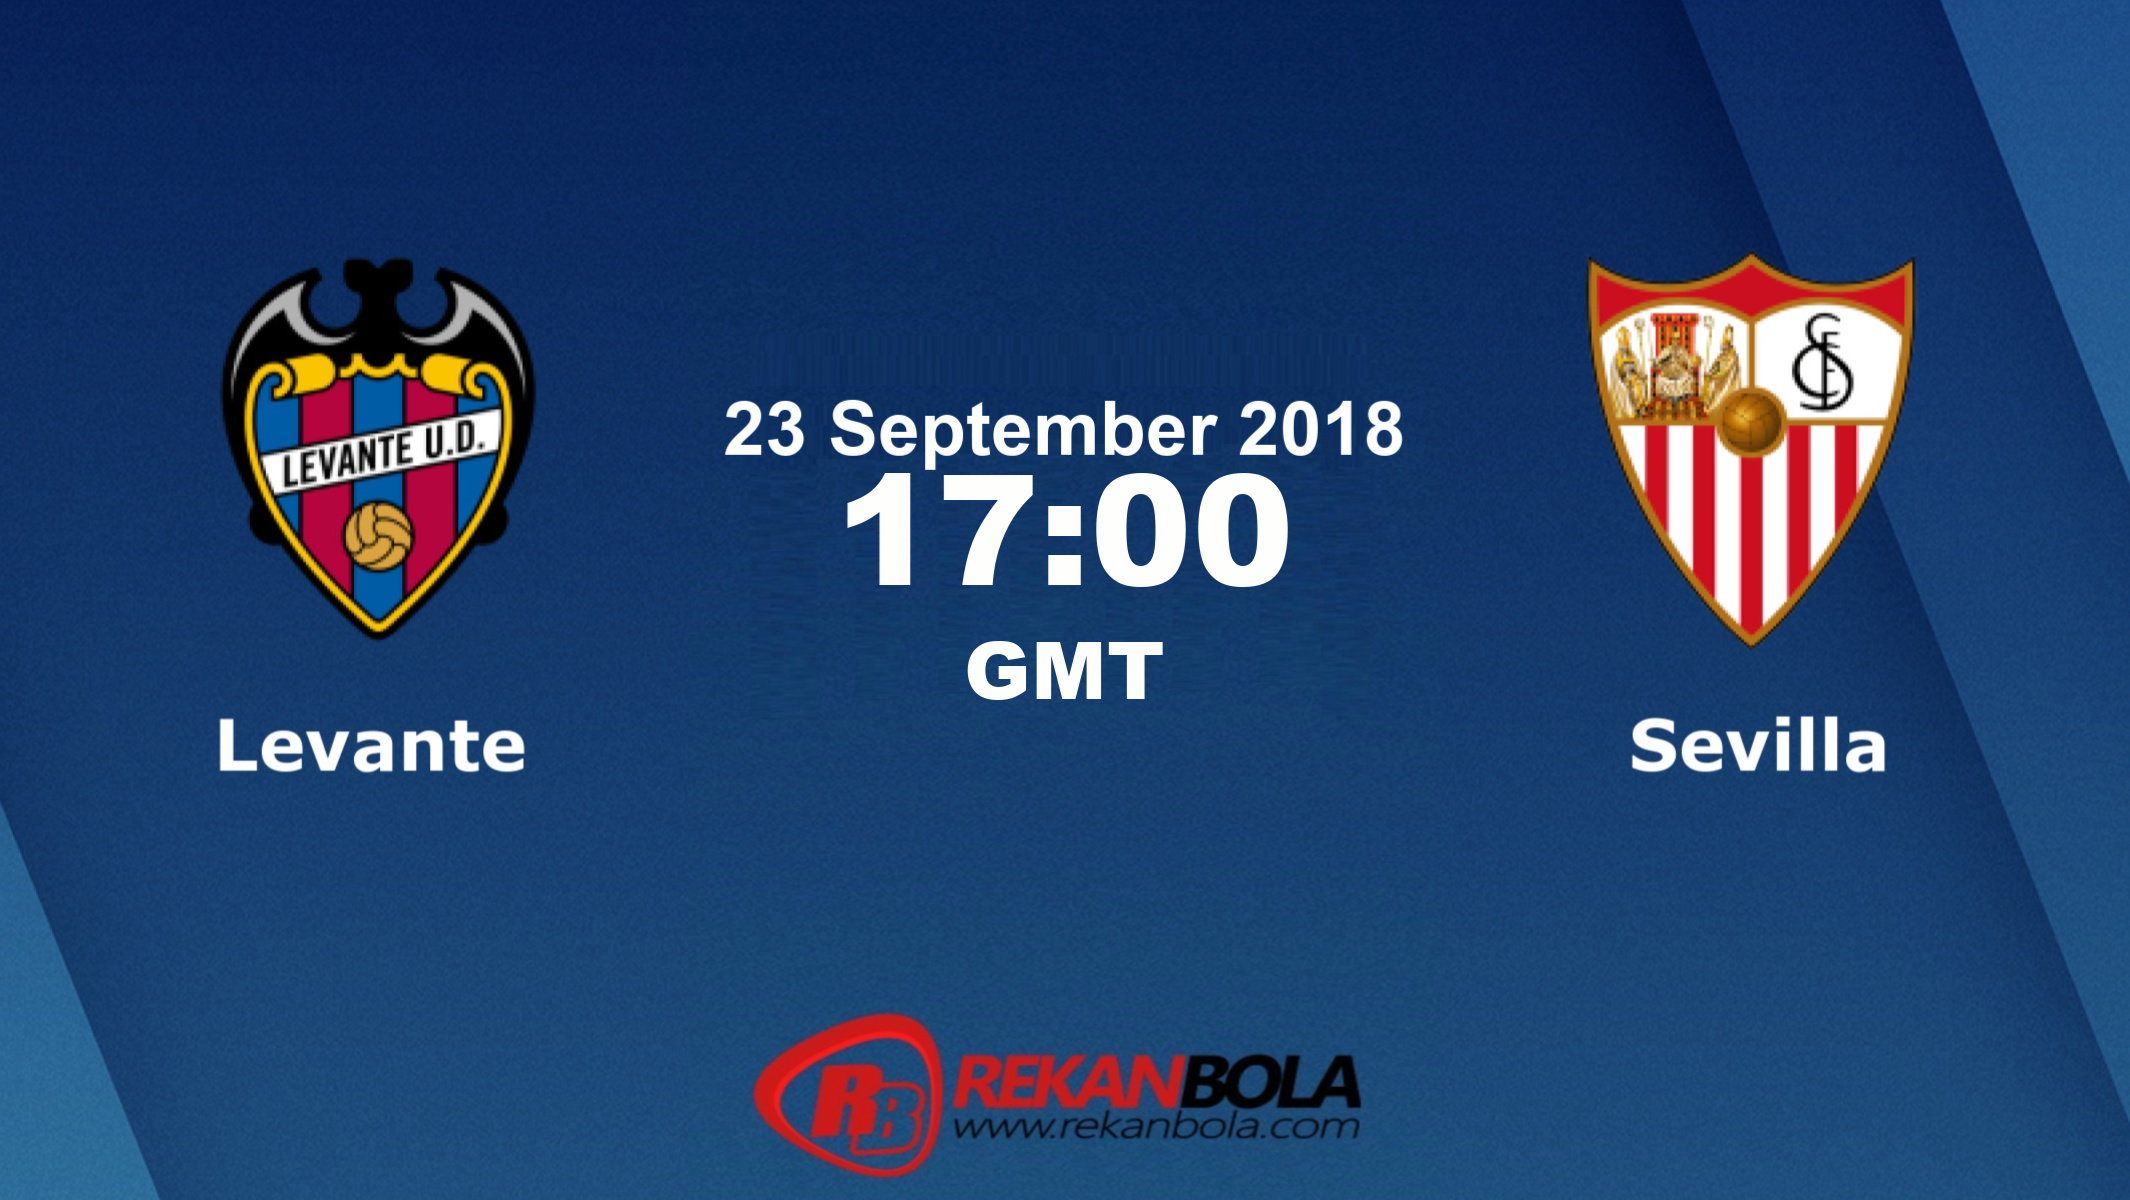 Nonton Siaran Live Streaming Levante Vs Sevilla 23 September 2018